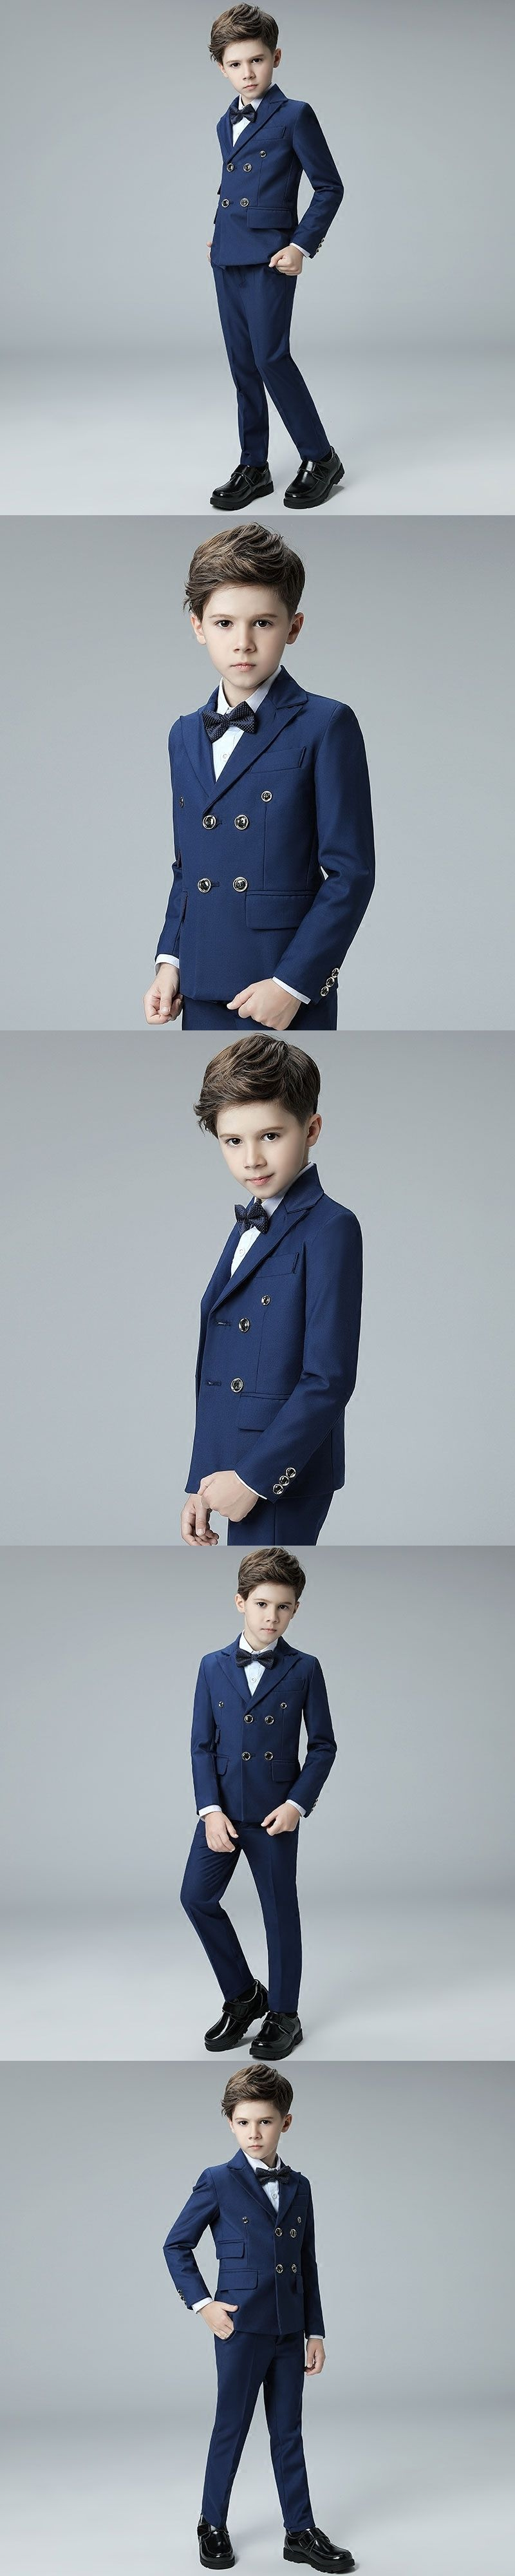 Colorful Childrens Wedding Tuxedos Frieze - All Wedding Dresses ...